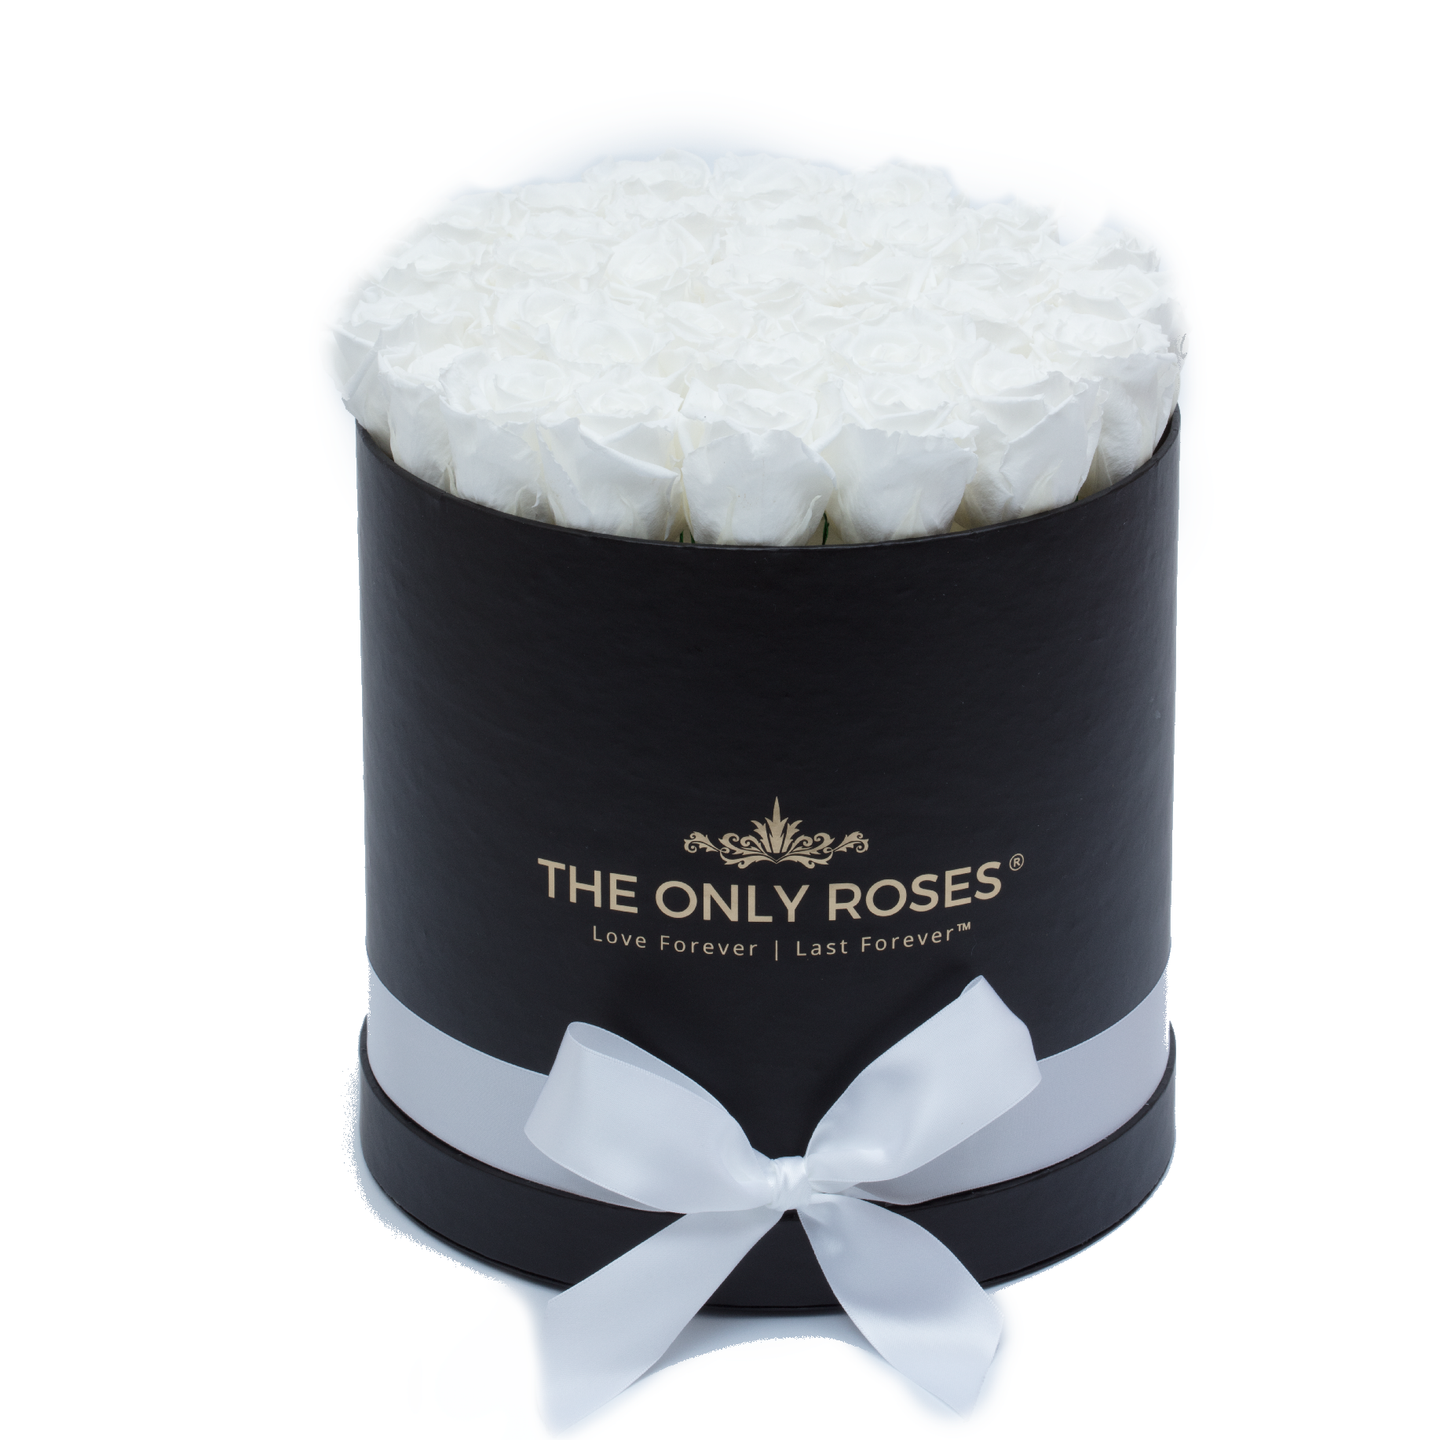 White Preserved Roses | Medium Round Black Huggy Rose Box - The Only Roses